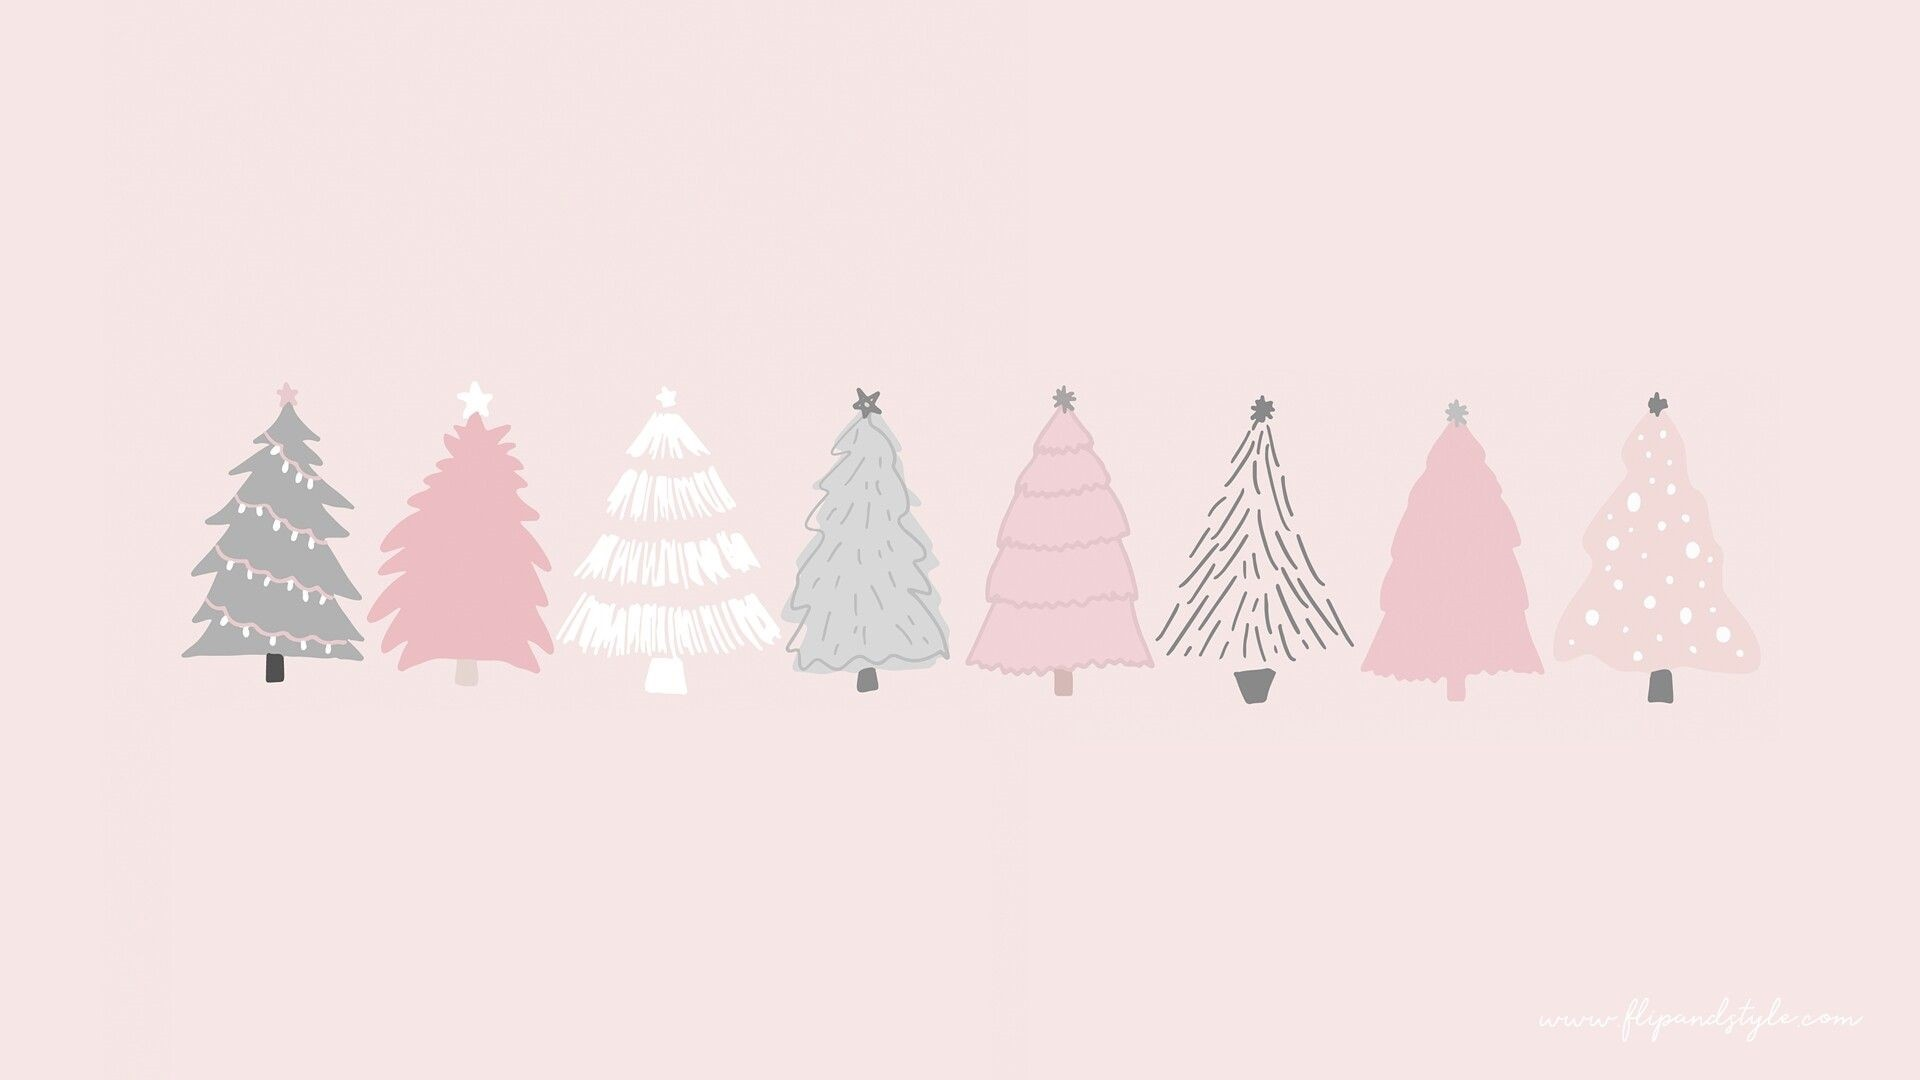 Minimalist Christmas Wallpaper Image